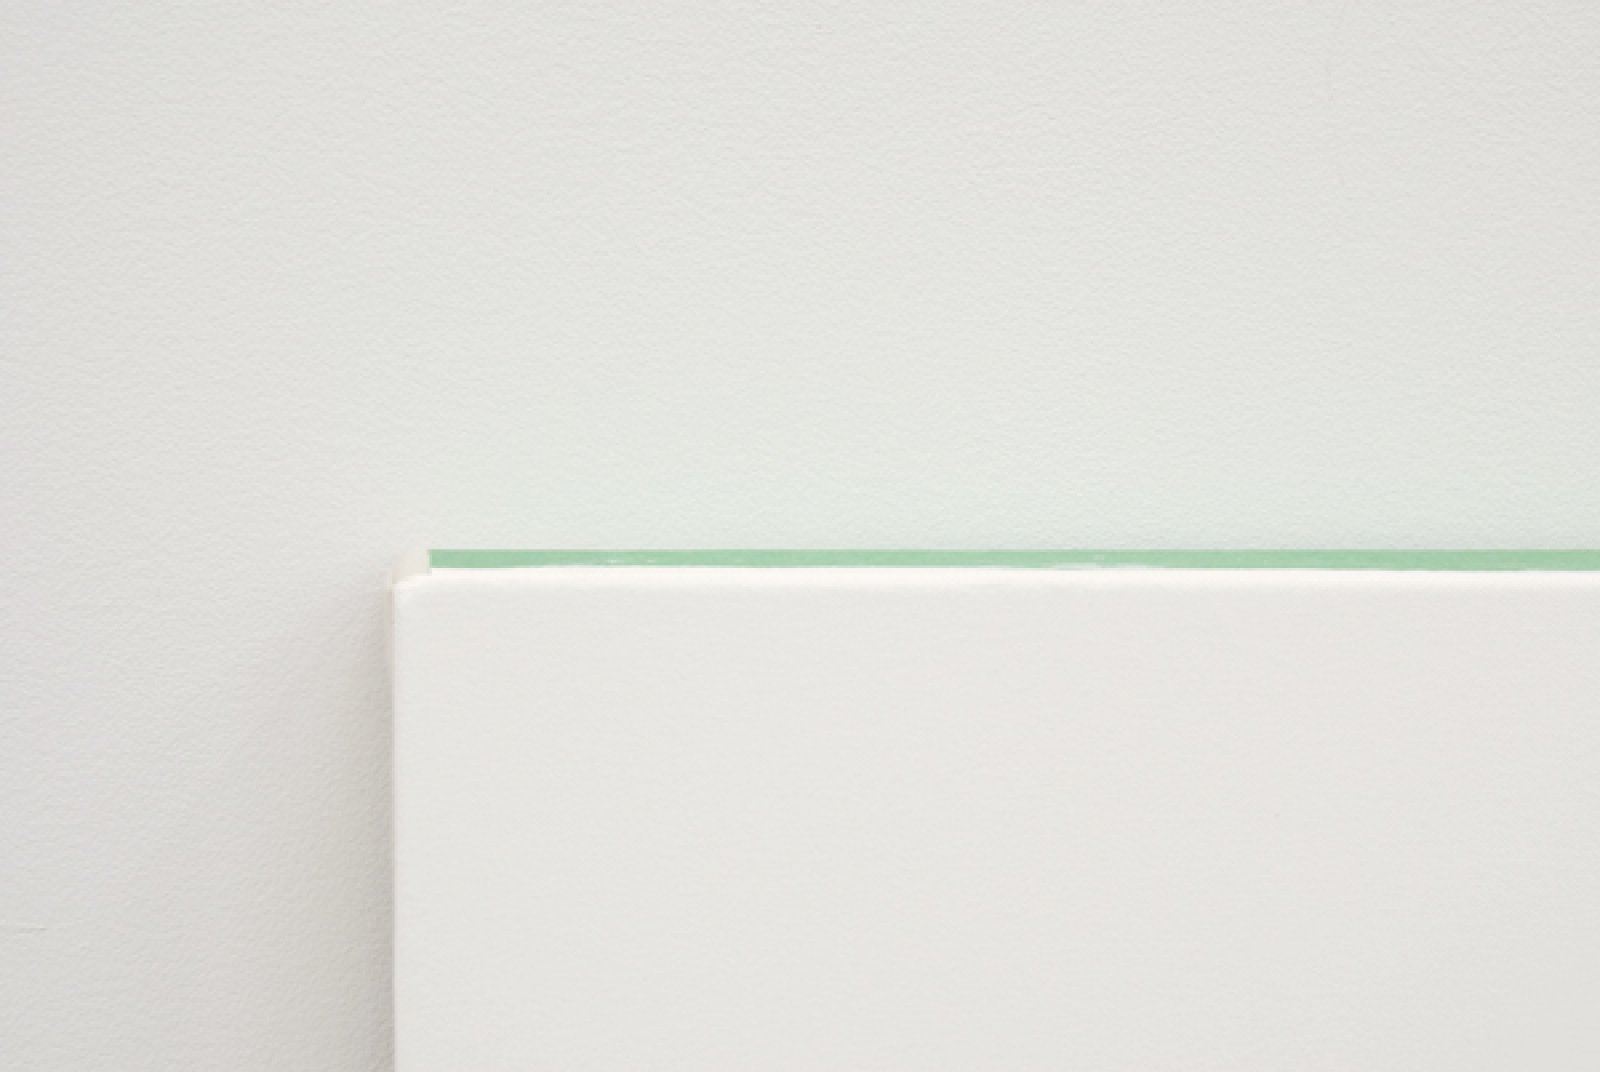 Arabella Campbell, Three Surfaces–One Colour (detail), 2007, acrylic on canvas 10 oz., green painter's tape, 48 x 48 in. (122 x 122 cm) by